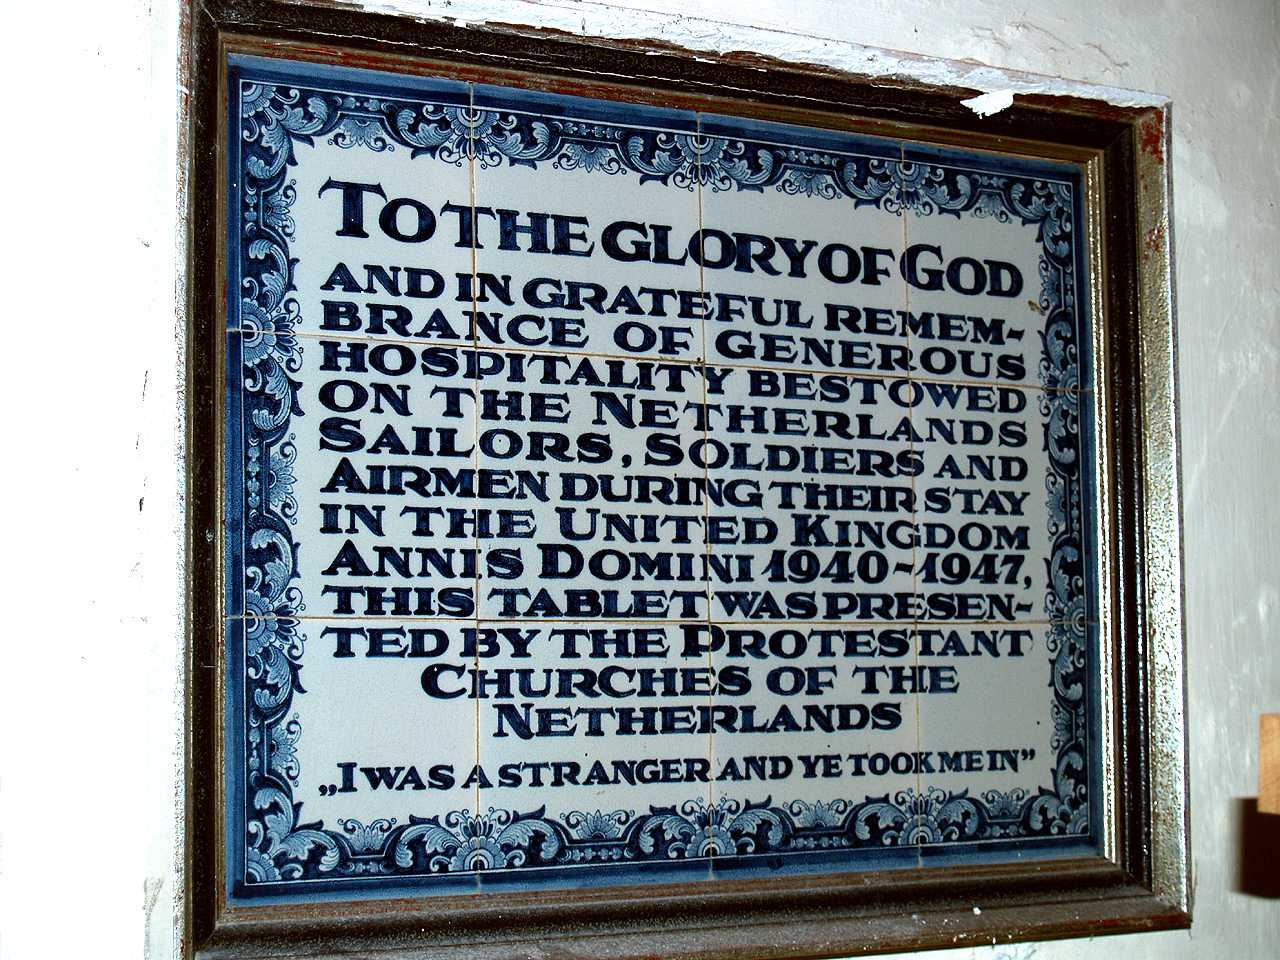 Anglesey, Holyhead, St Cybi's Church - Plaque made of tiles thanking the people for the hospitality bestowed upon the Dutch Forces during WWII